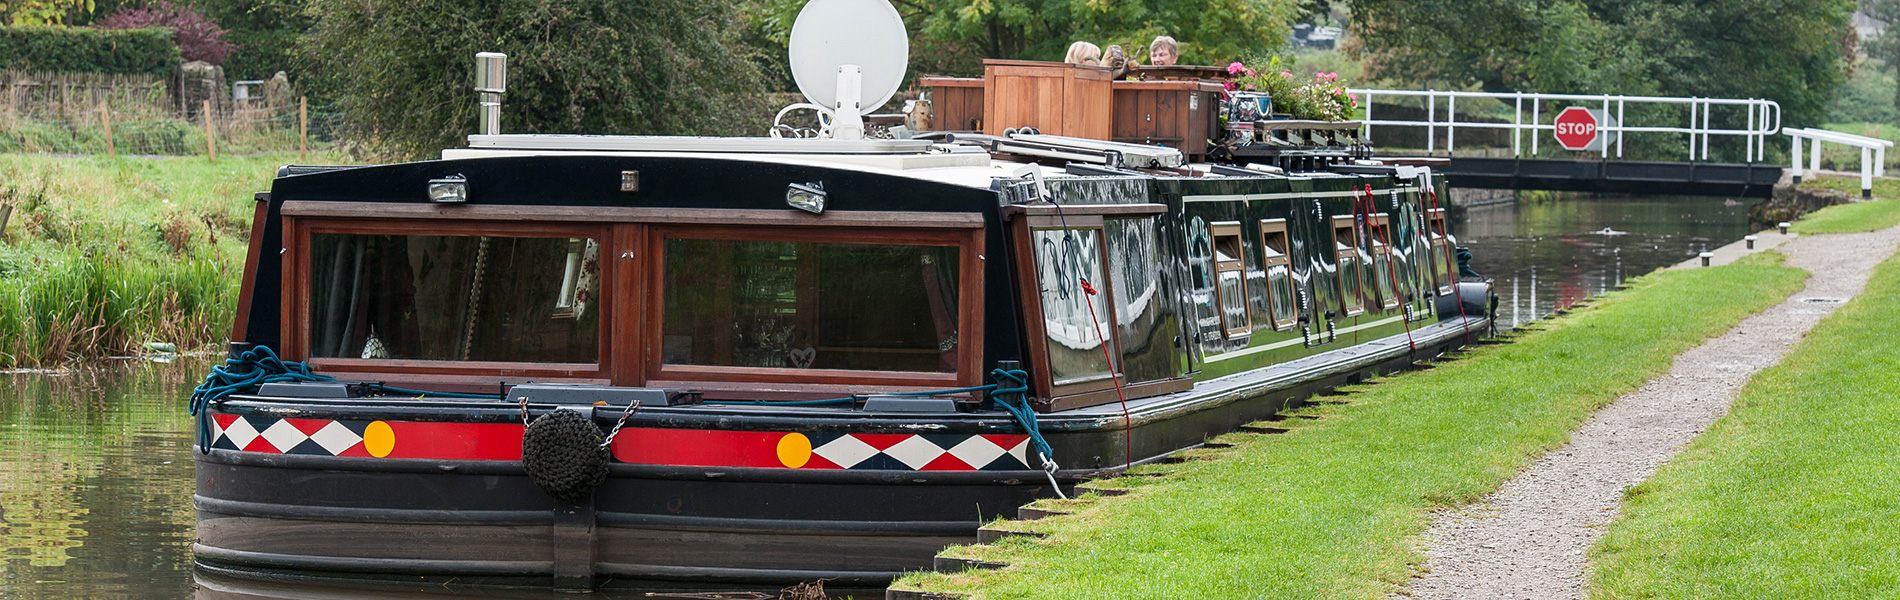 Lady Teal Luxury 5 Star Hotel Boat Uk